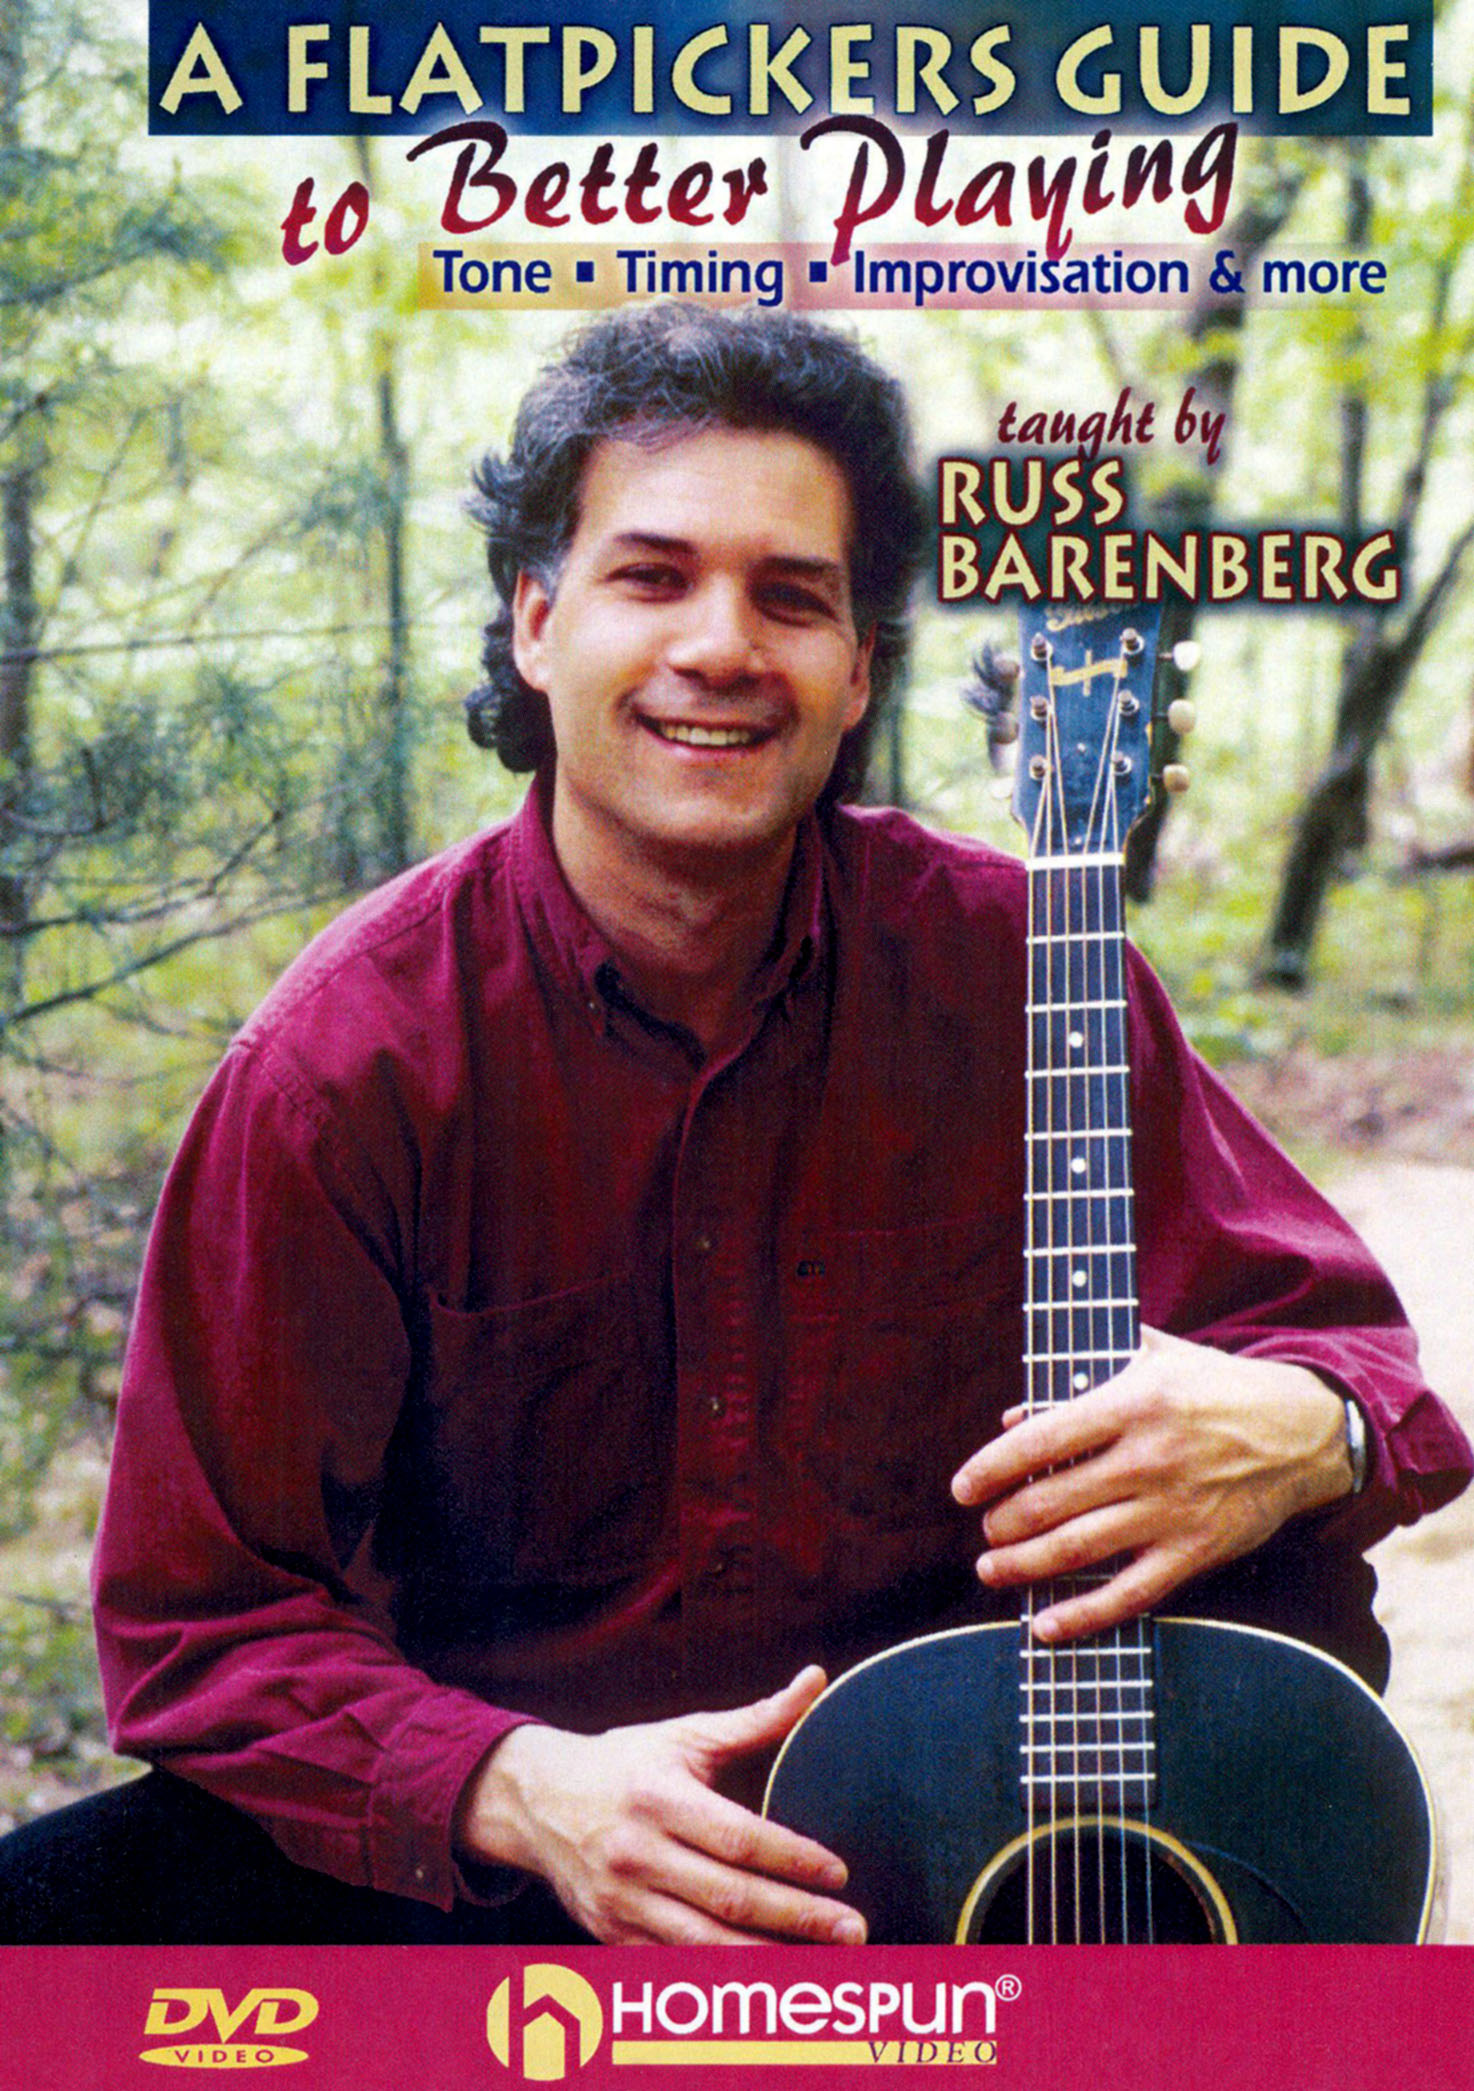 Russ Barenberg: The Flatpicker's Guide to Better Playing